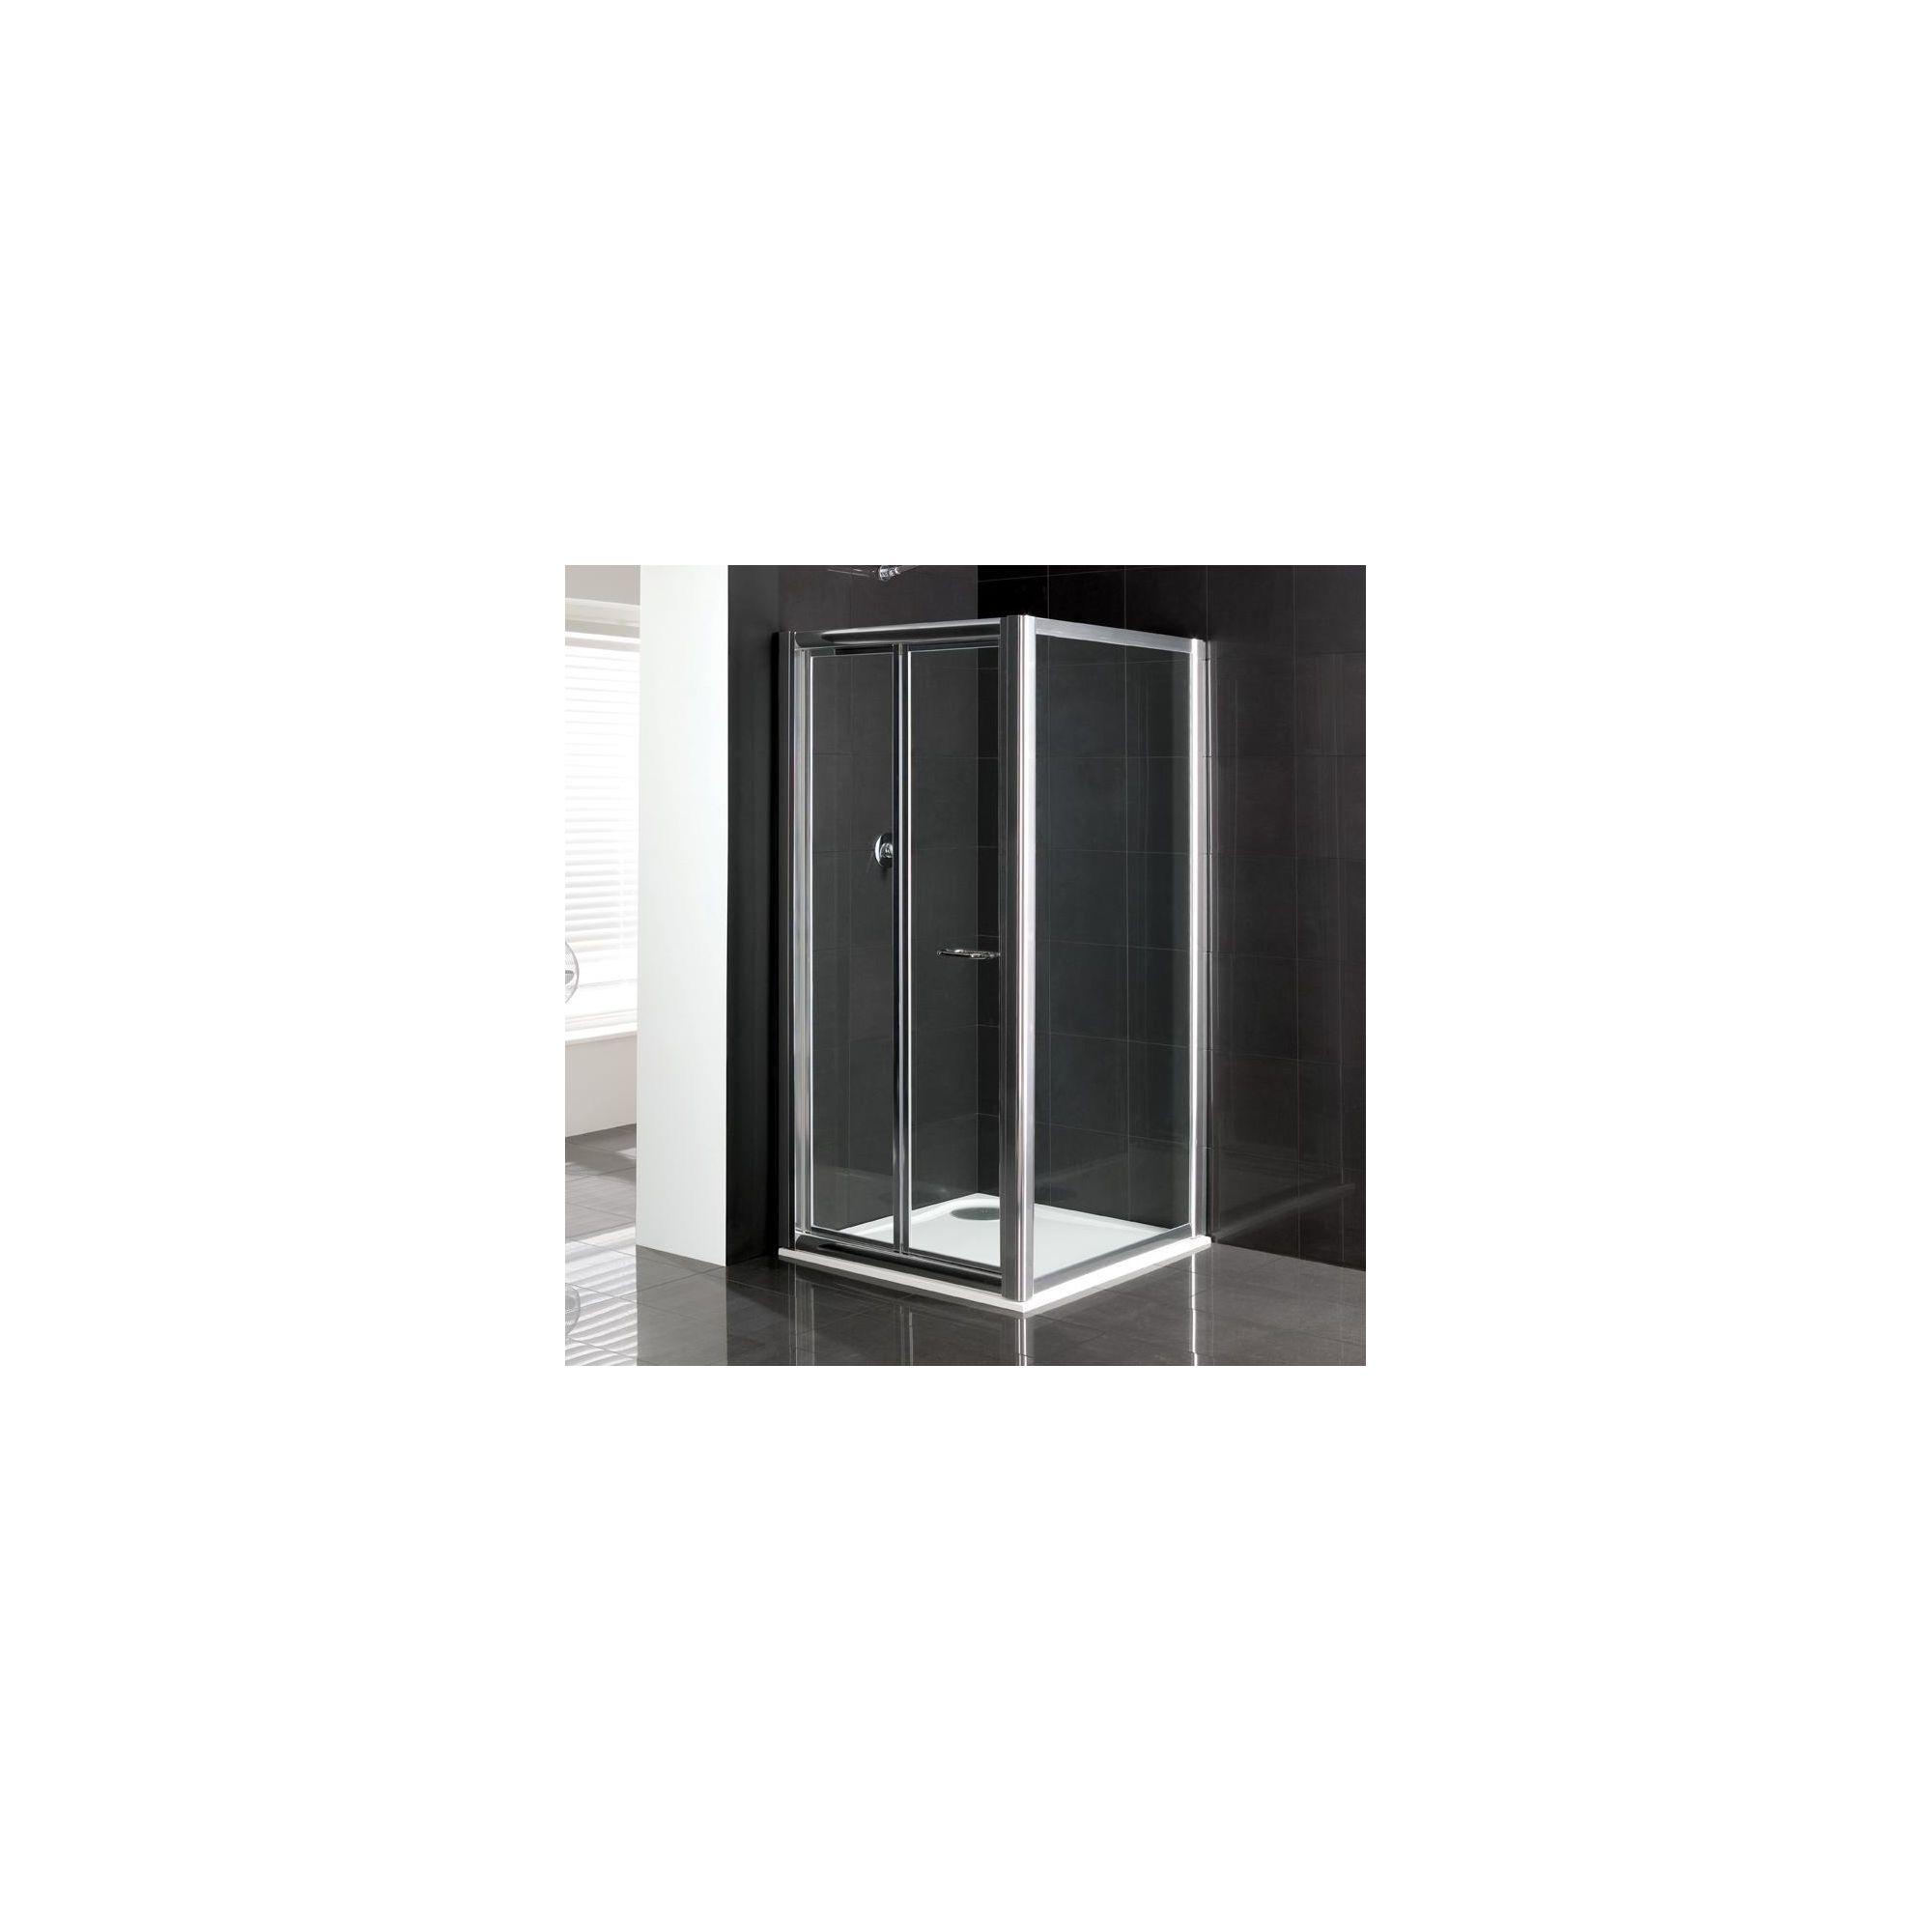 Duchy Elite Silver Bi-Fold Door Shower Enclosure, 900mm x 800mm, Standard Tray, 6mm Glass at Tesco Direct